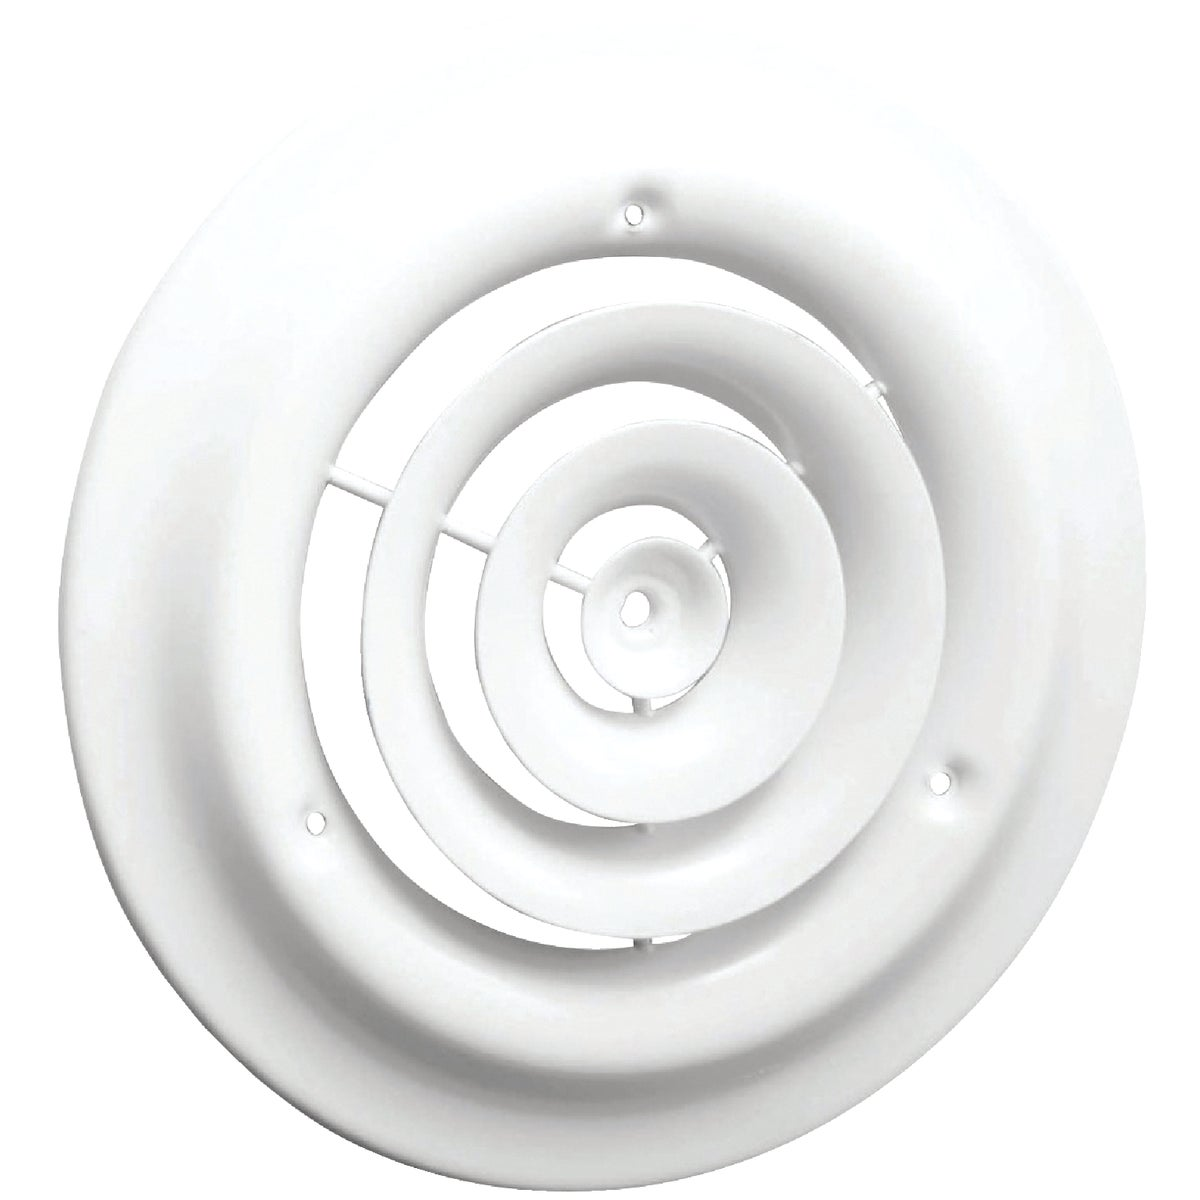 """8""""RND WH CEILNG DIFFUSER - ABCDWHO8 by Greystone Home Prod"""